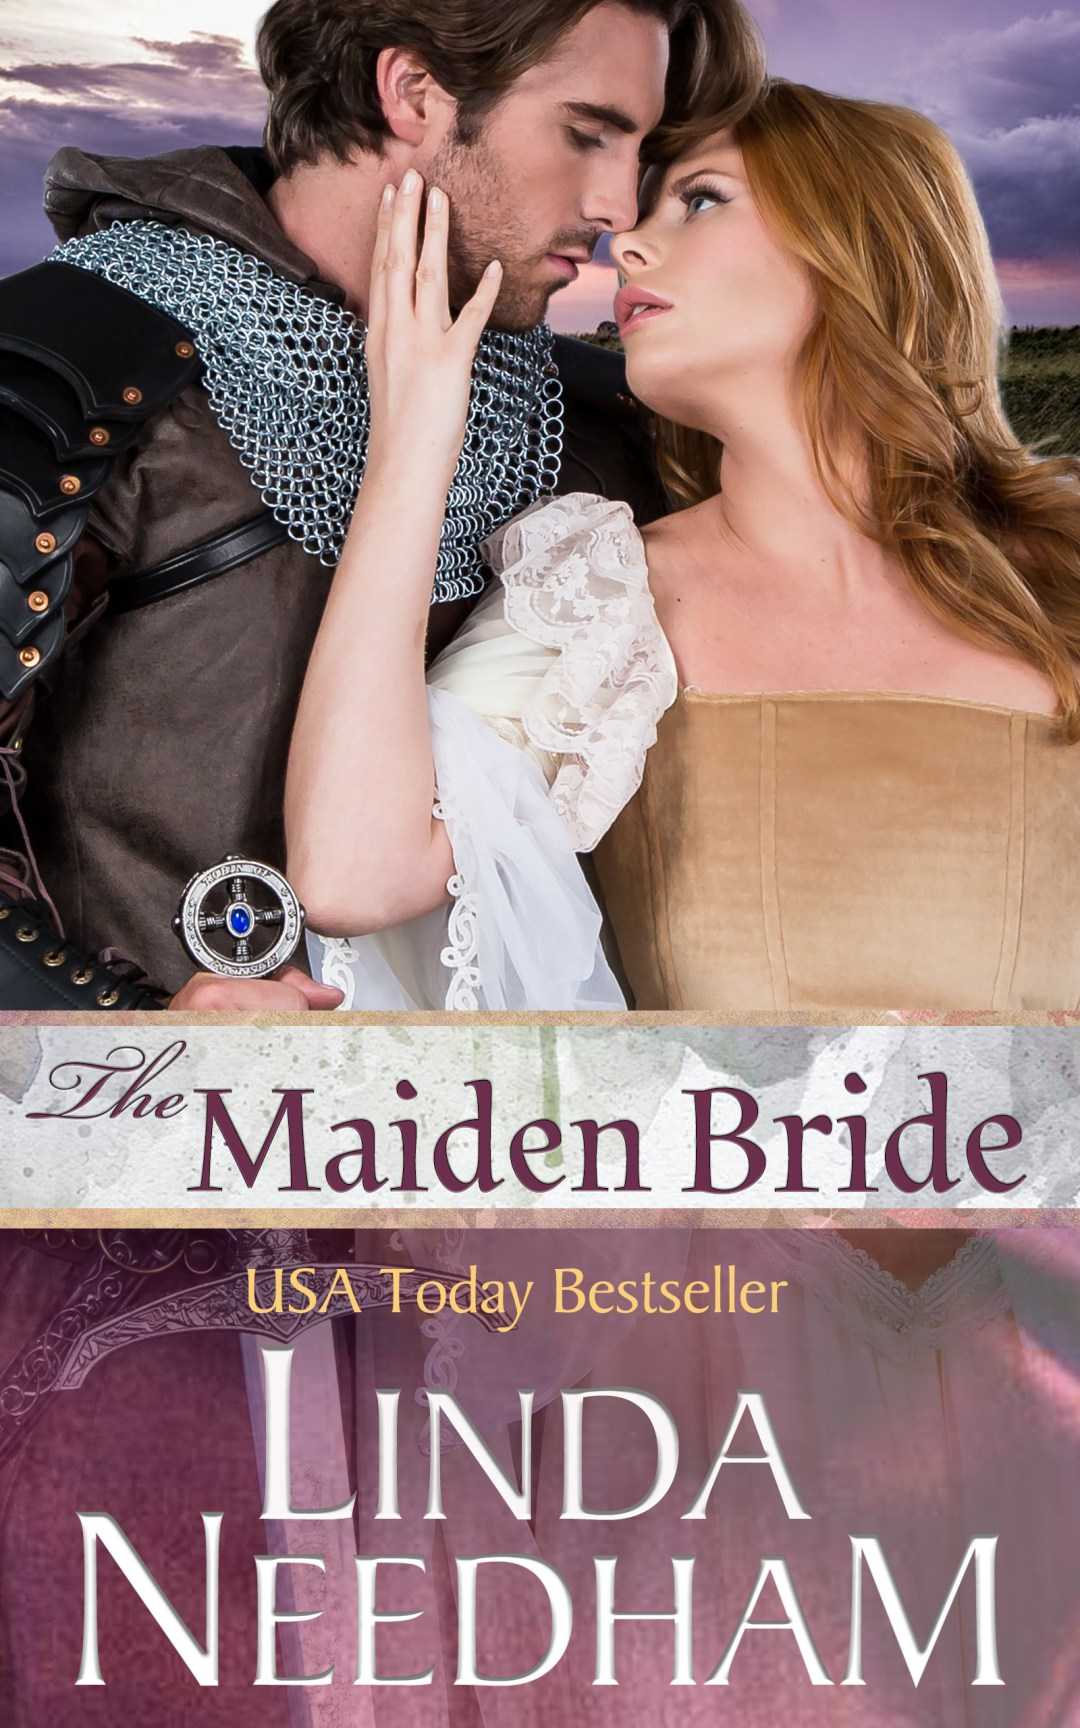 Book cover The Maiden Bride by Linda Needham